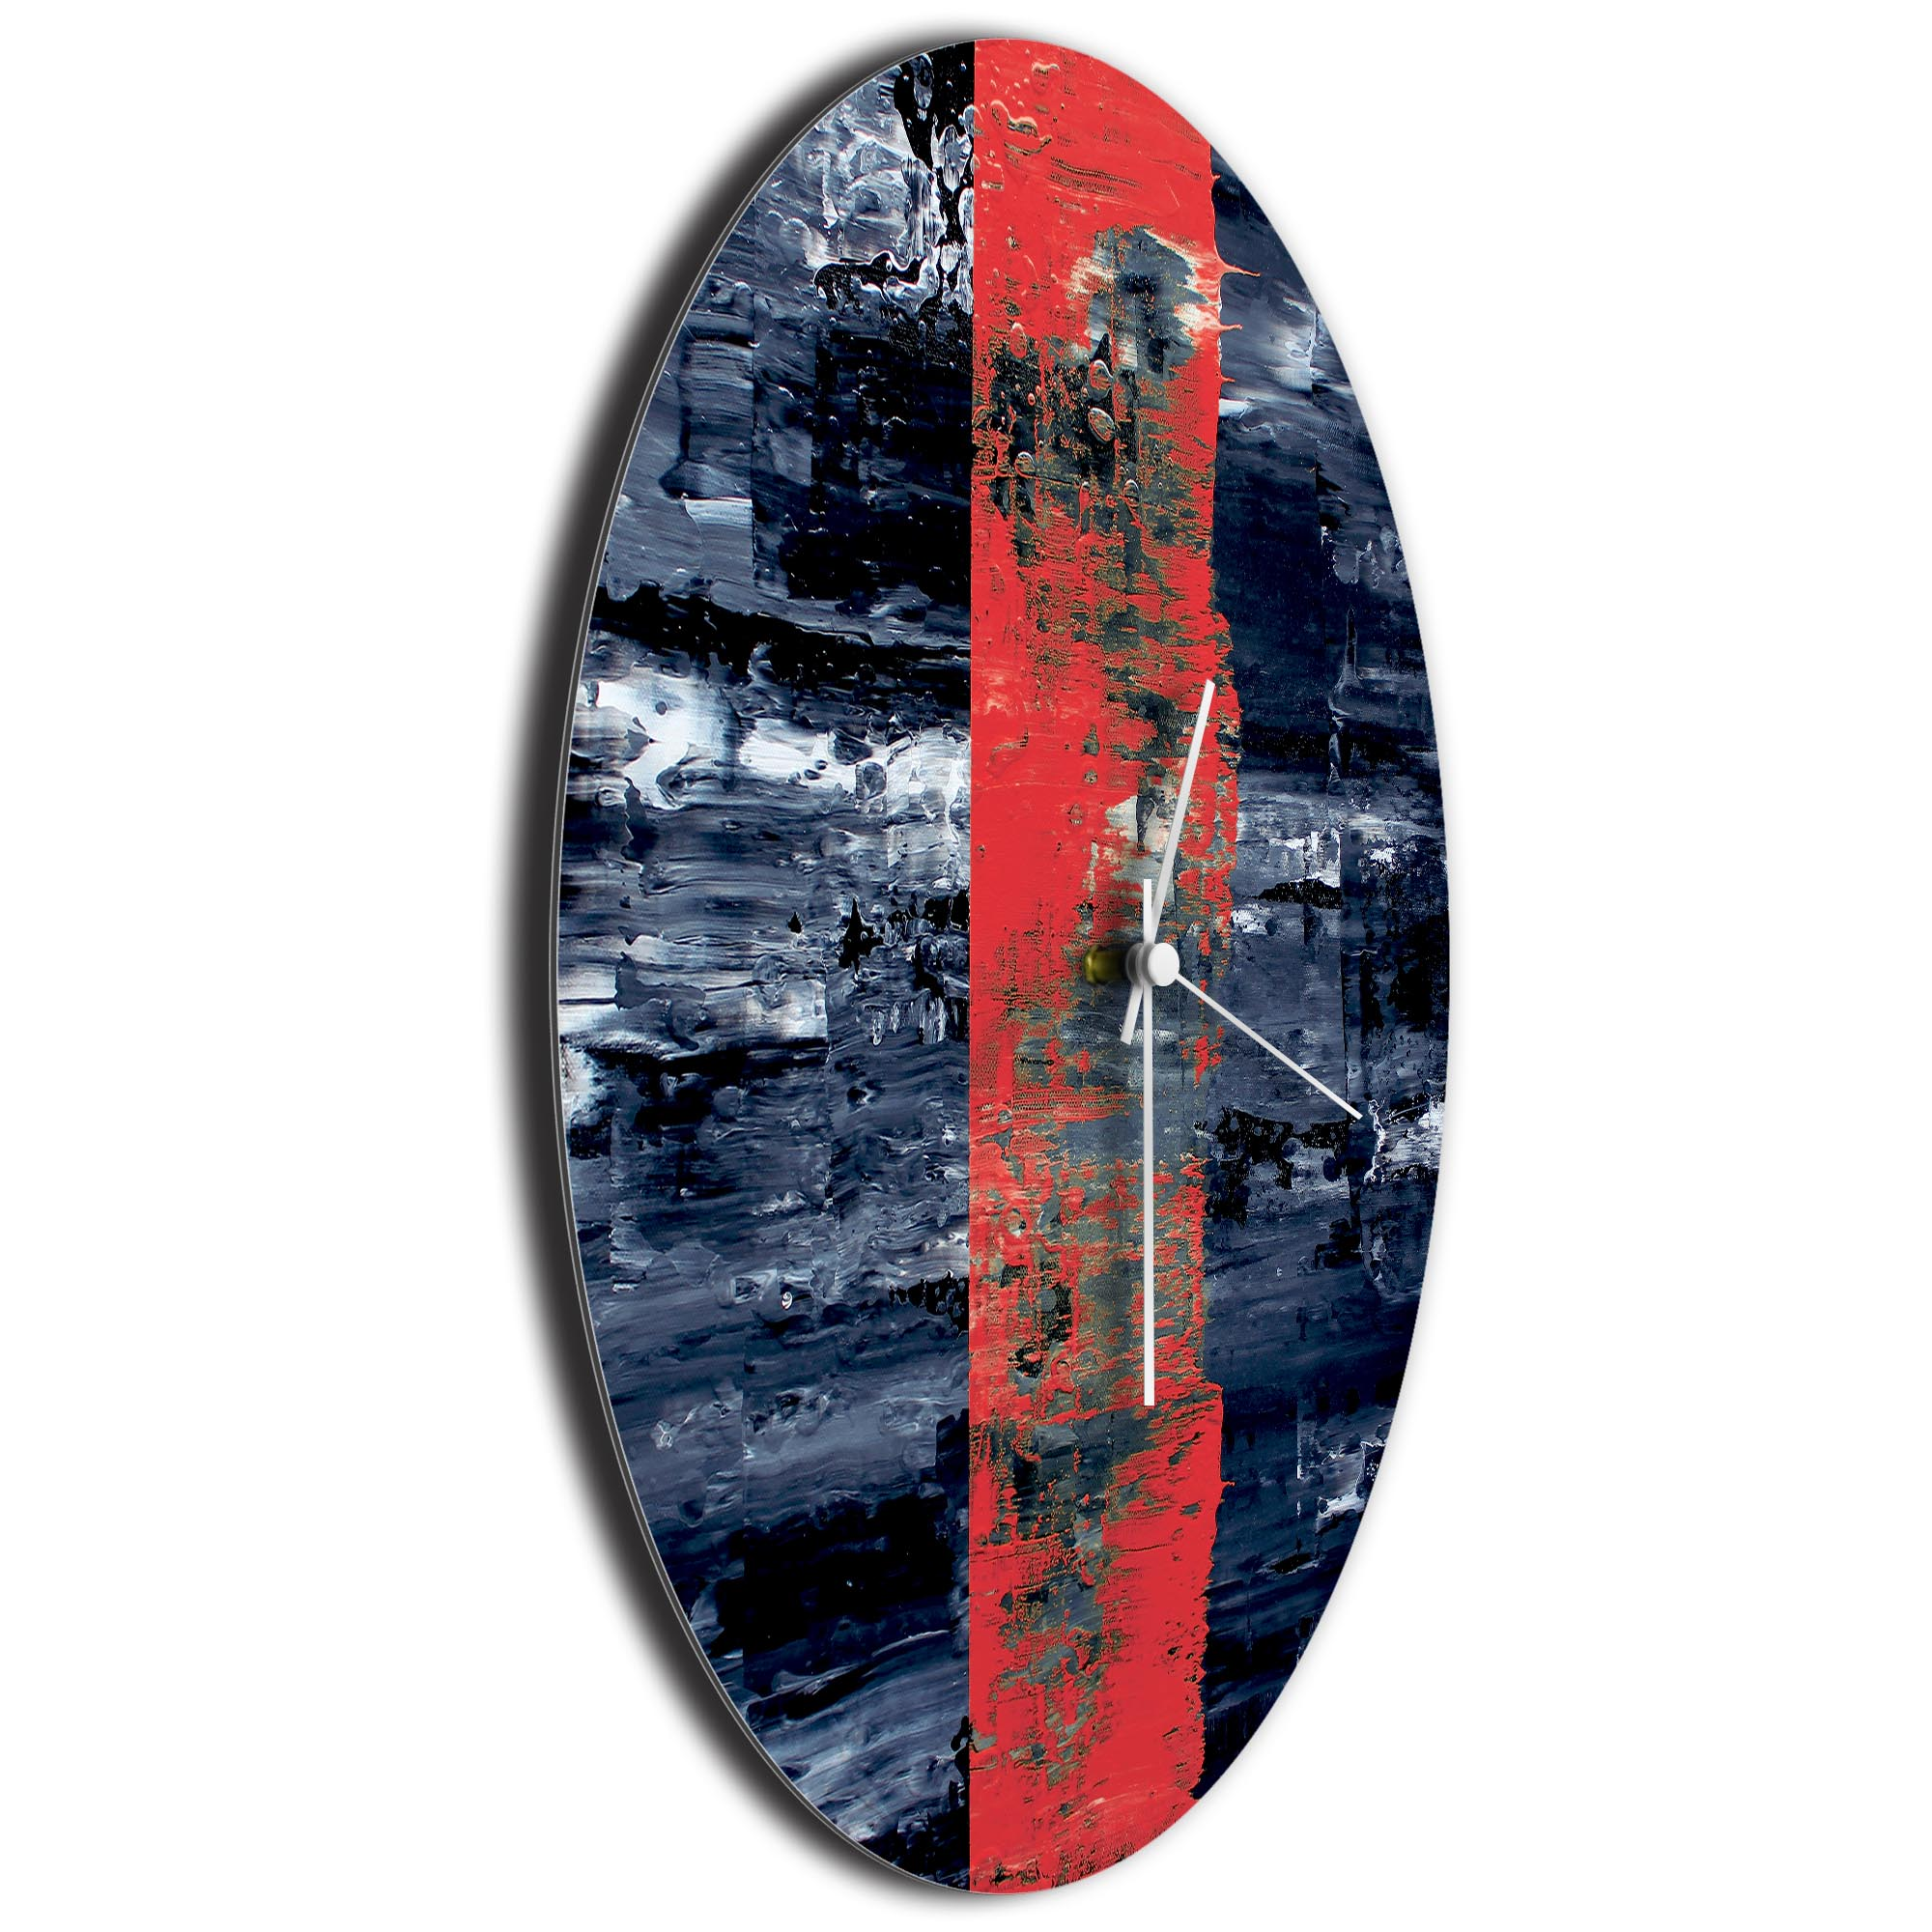 Red Line Circle Clock Large by Mendo Vasilevski - Urban Abstract Home Decor - Image 3